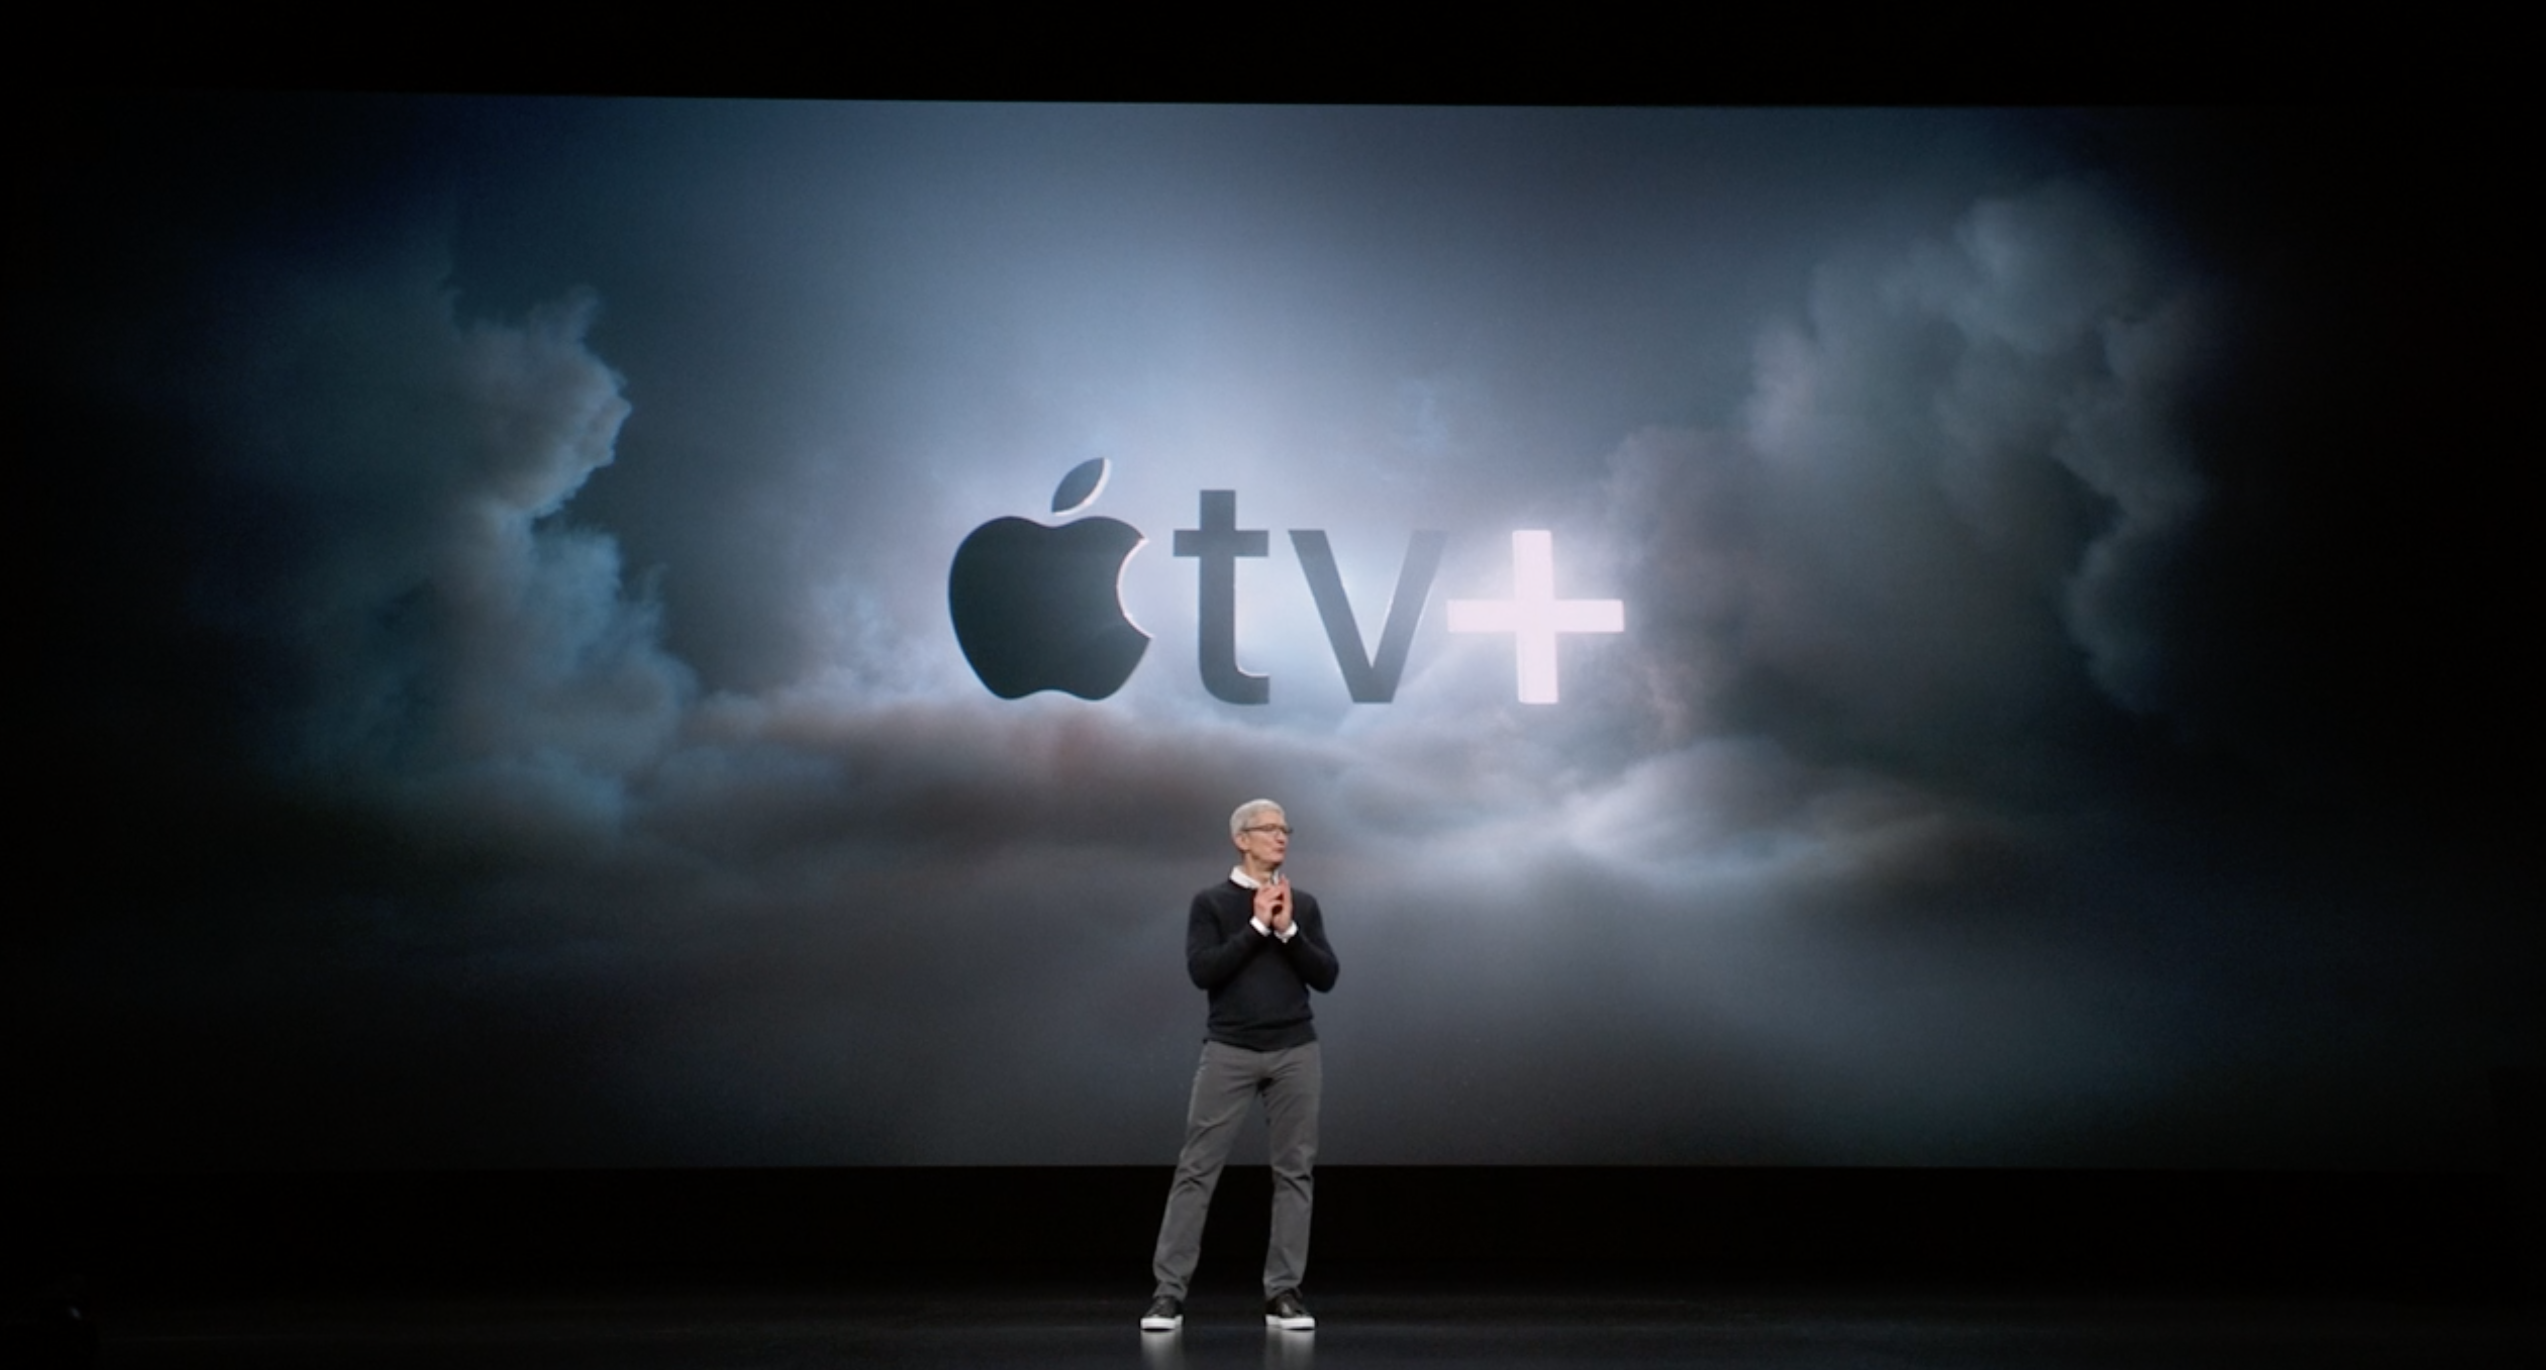 The name of this Apple Inc. product is Apple TV